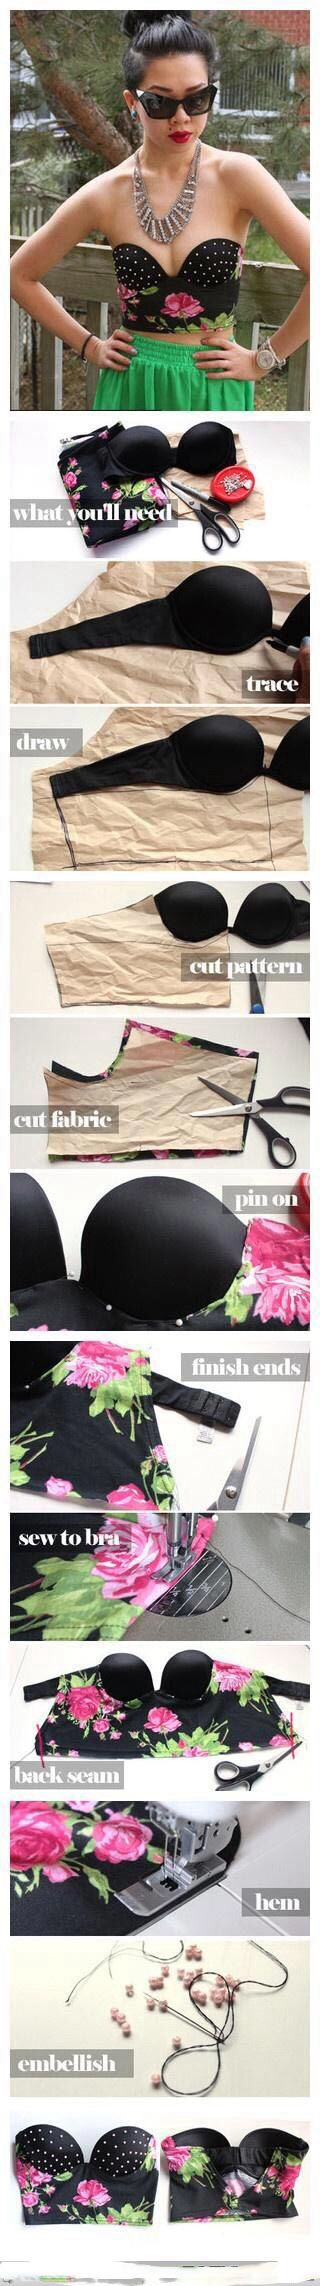 18 DIY Tutorials On How To Update Old Bras